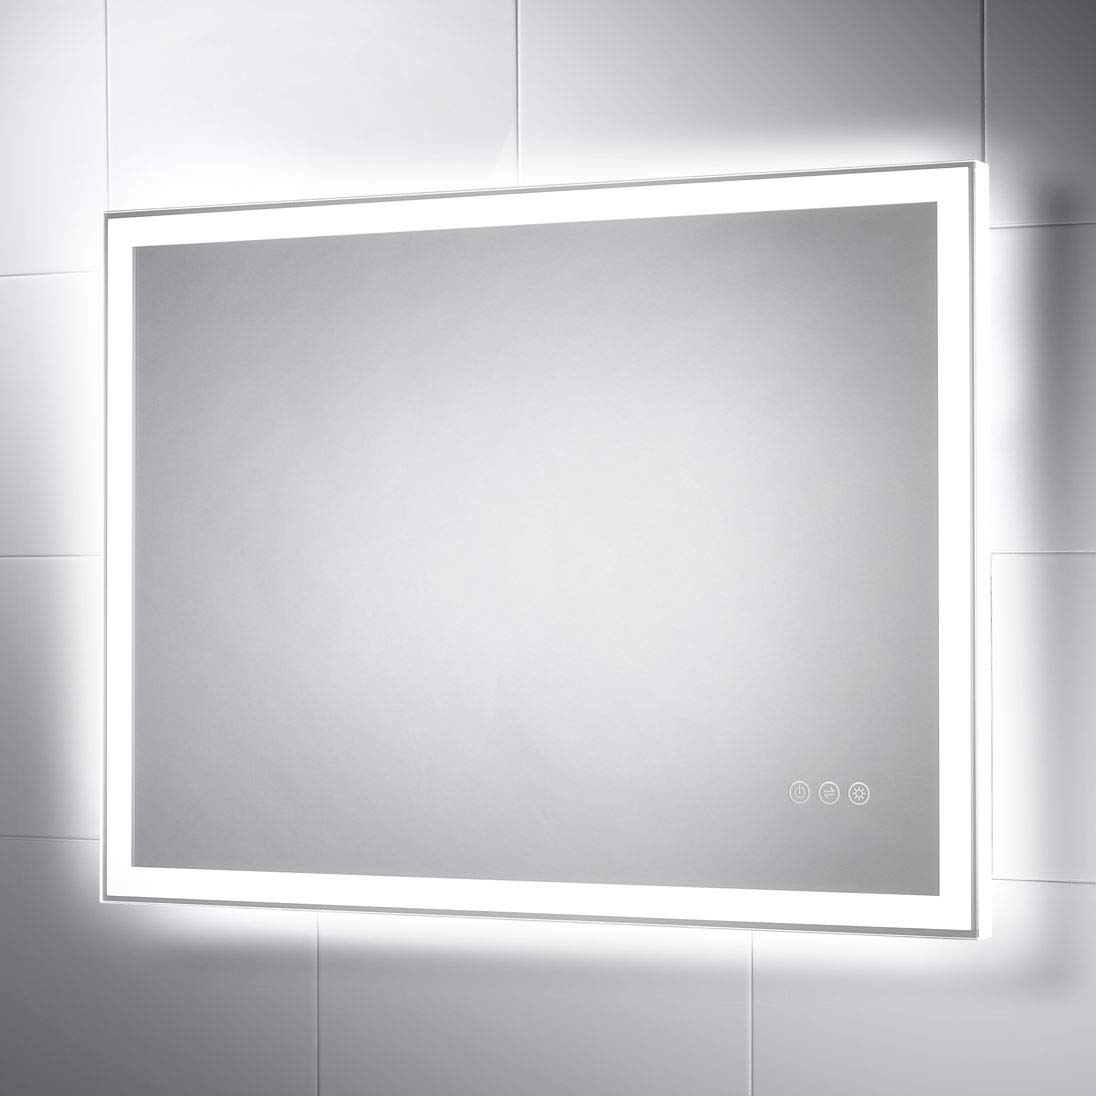 Pebble Grey 24 x 32 Wall Mounted LED Lighted Bathroom Vanity Mirror with 3 Way Touch Sensor Switch, LED Dimmer & Demister